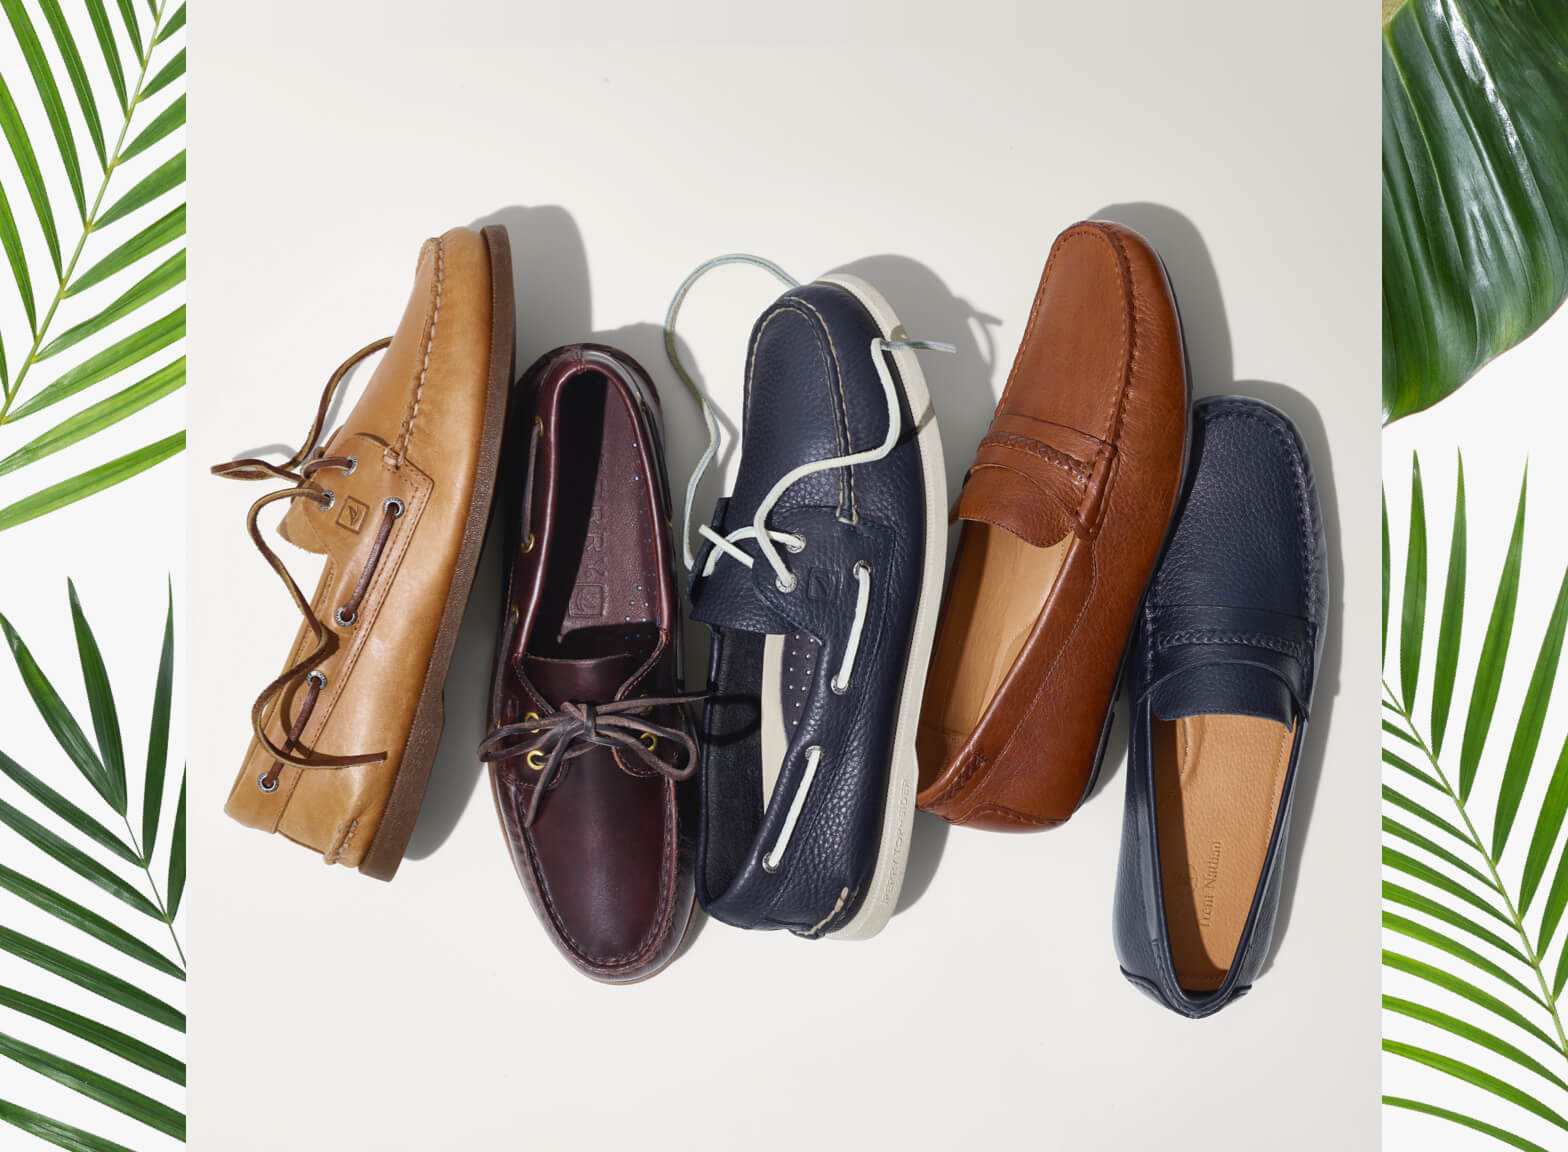 Collecton of leather boat shoes